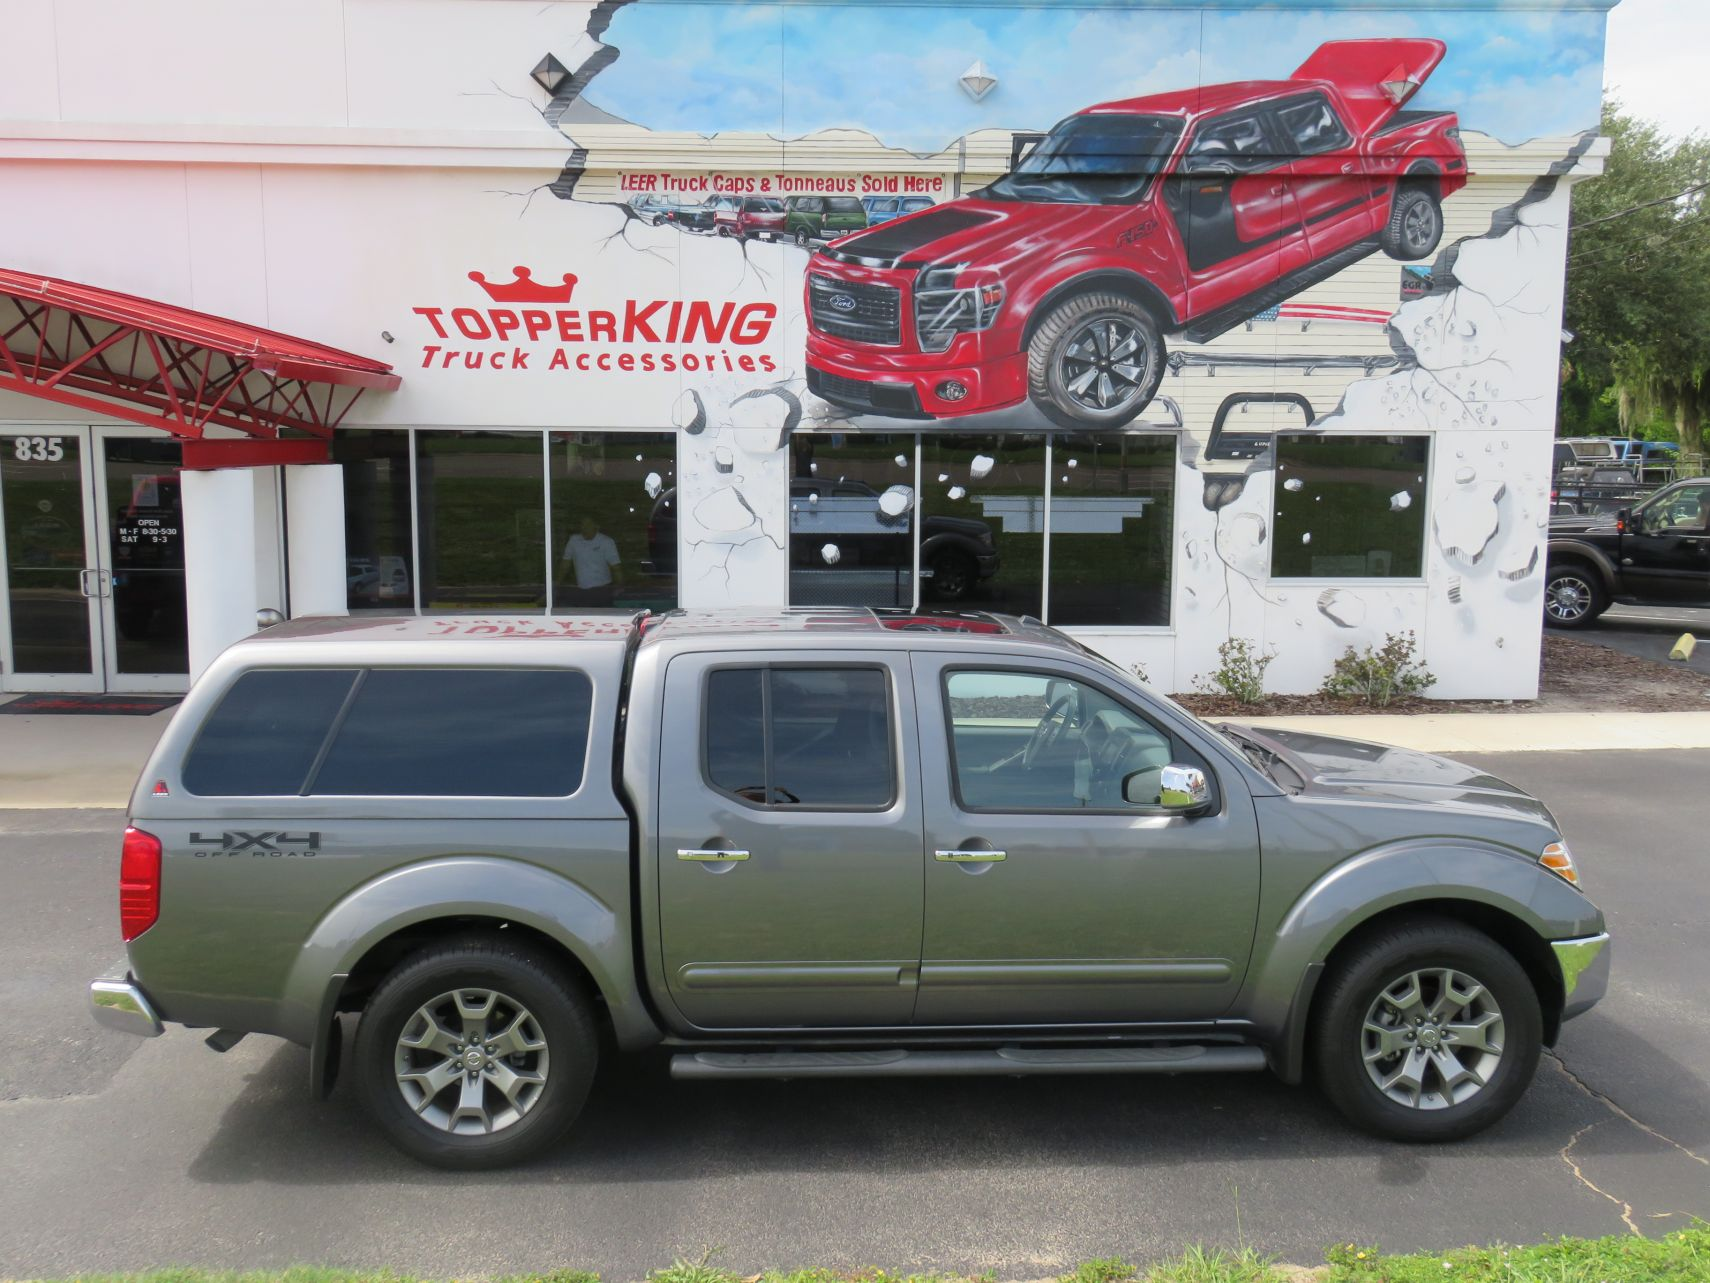 2019 Nissan Frontier with LEER 100XL Fiberglass Topper, Nerf Bars, Chrome, Hitch, Tint. Call TopperKING Brandon 813-689-2449 or Clearwater FL 727-530-9066.